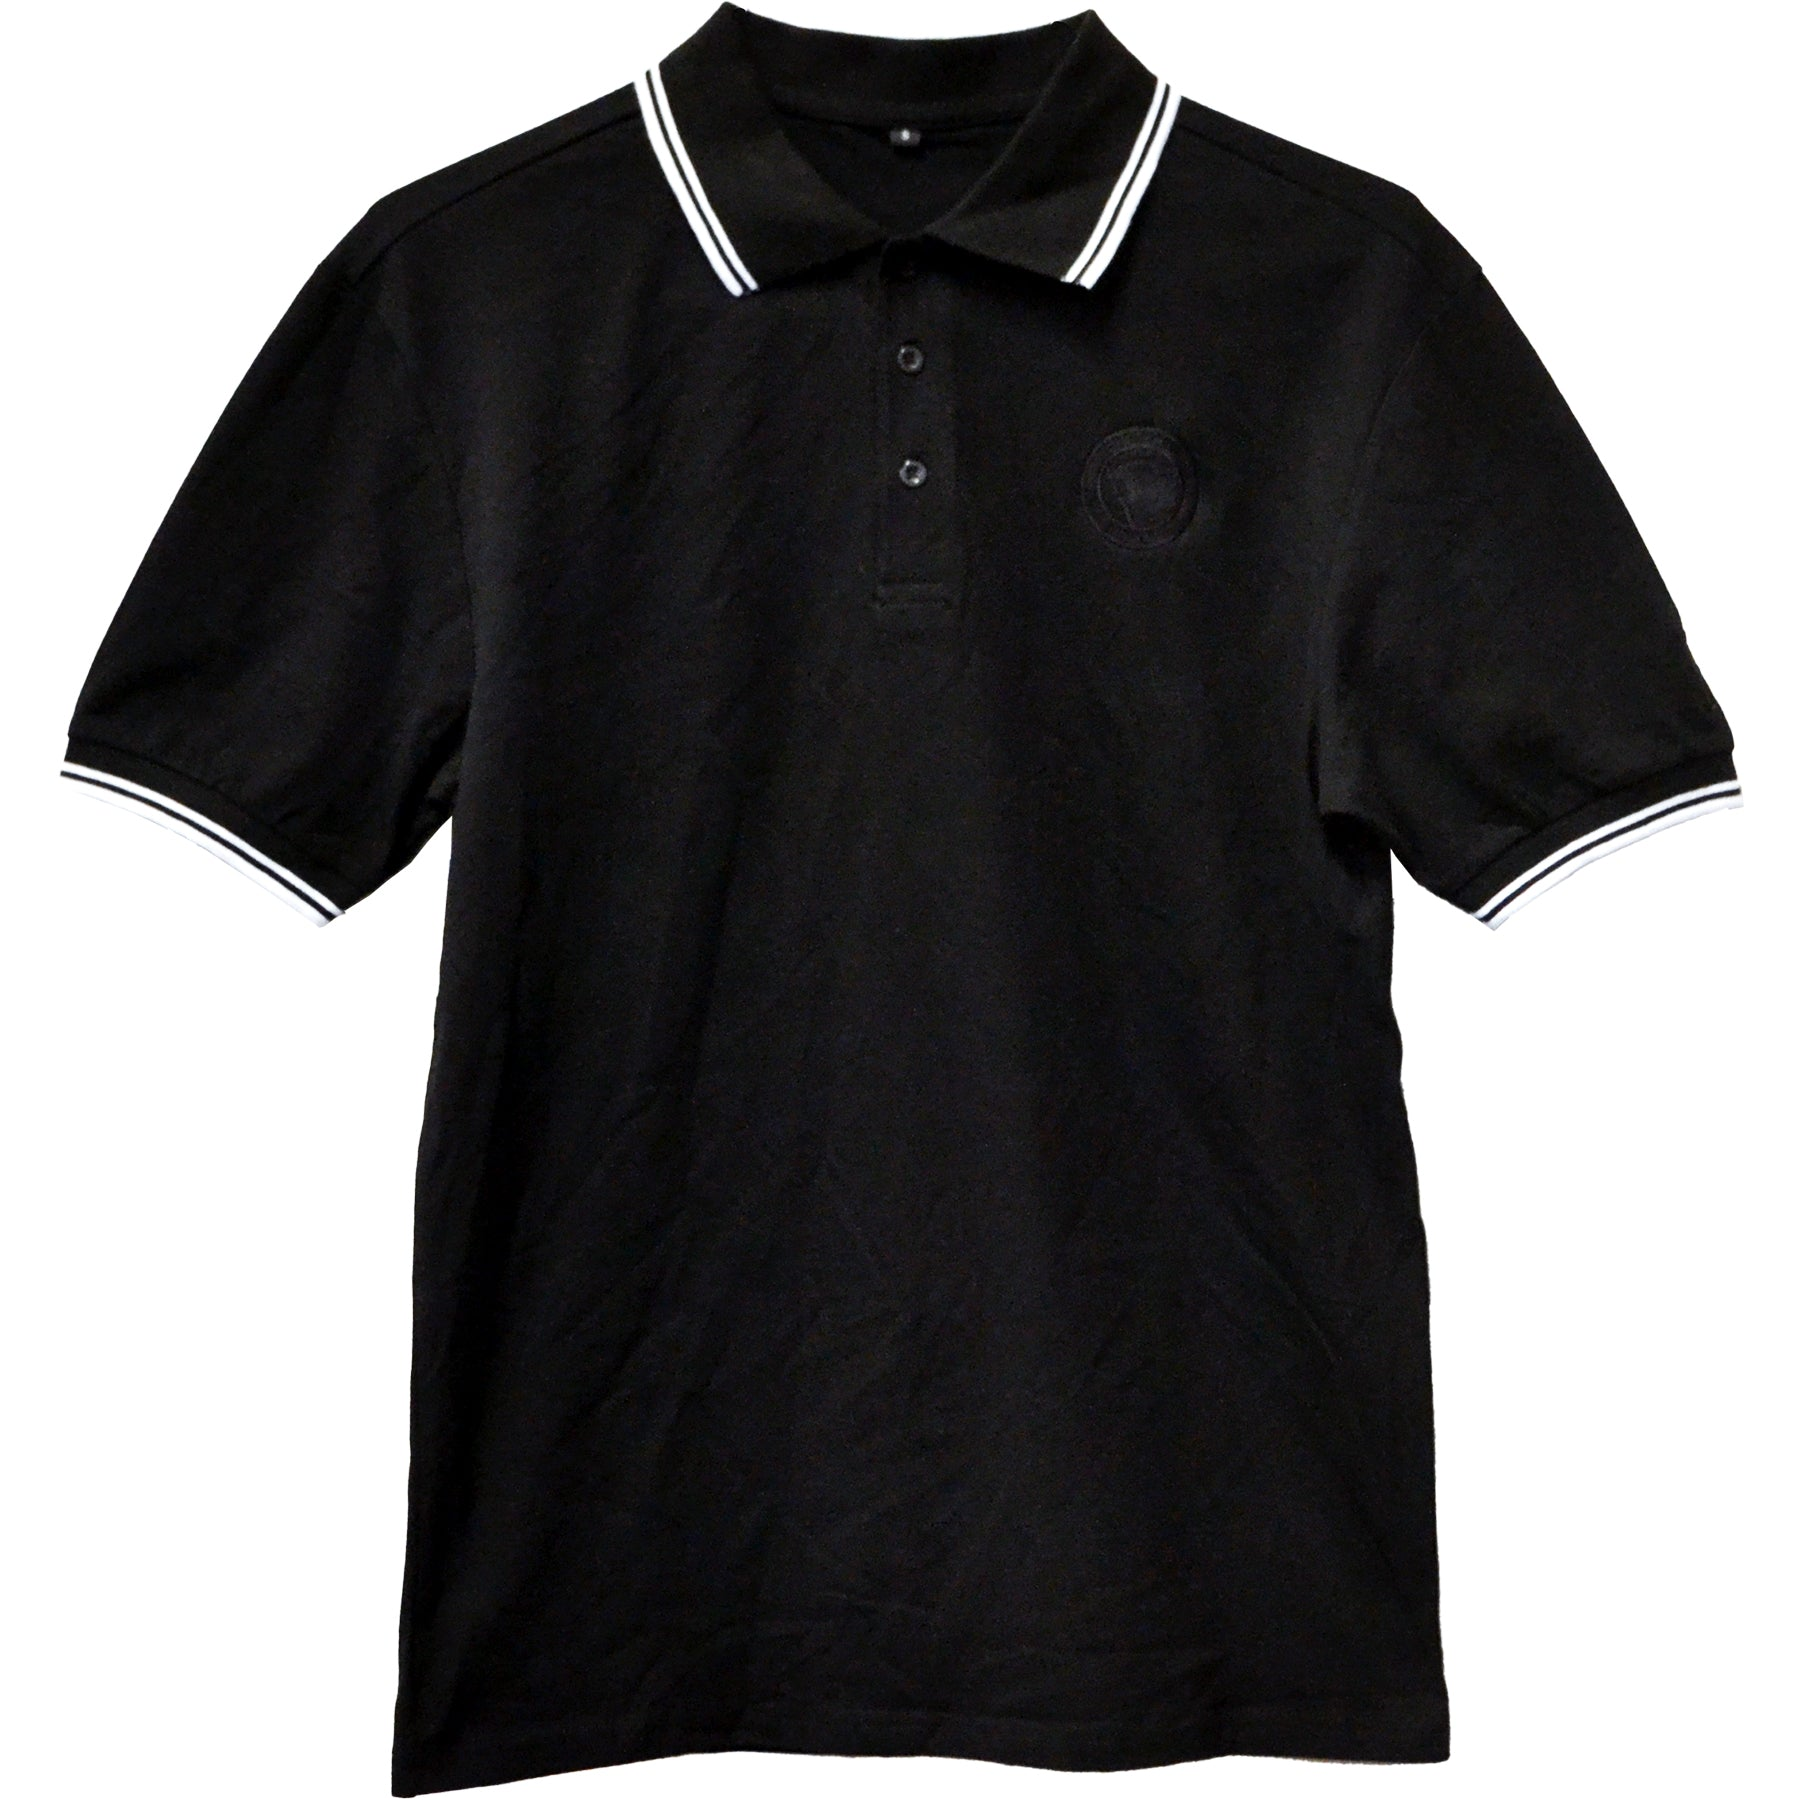 Pirates Press Records - One Family, One Flag - Black - Polo - Men's